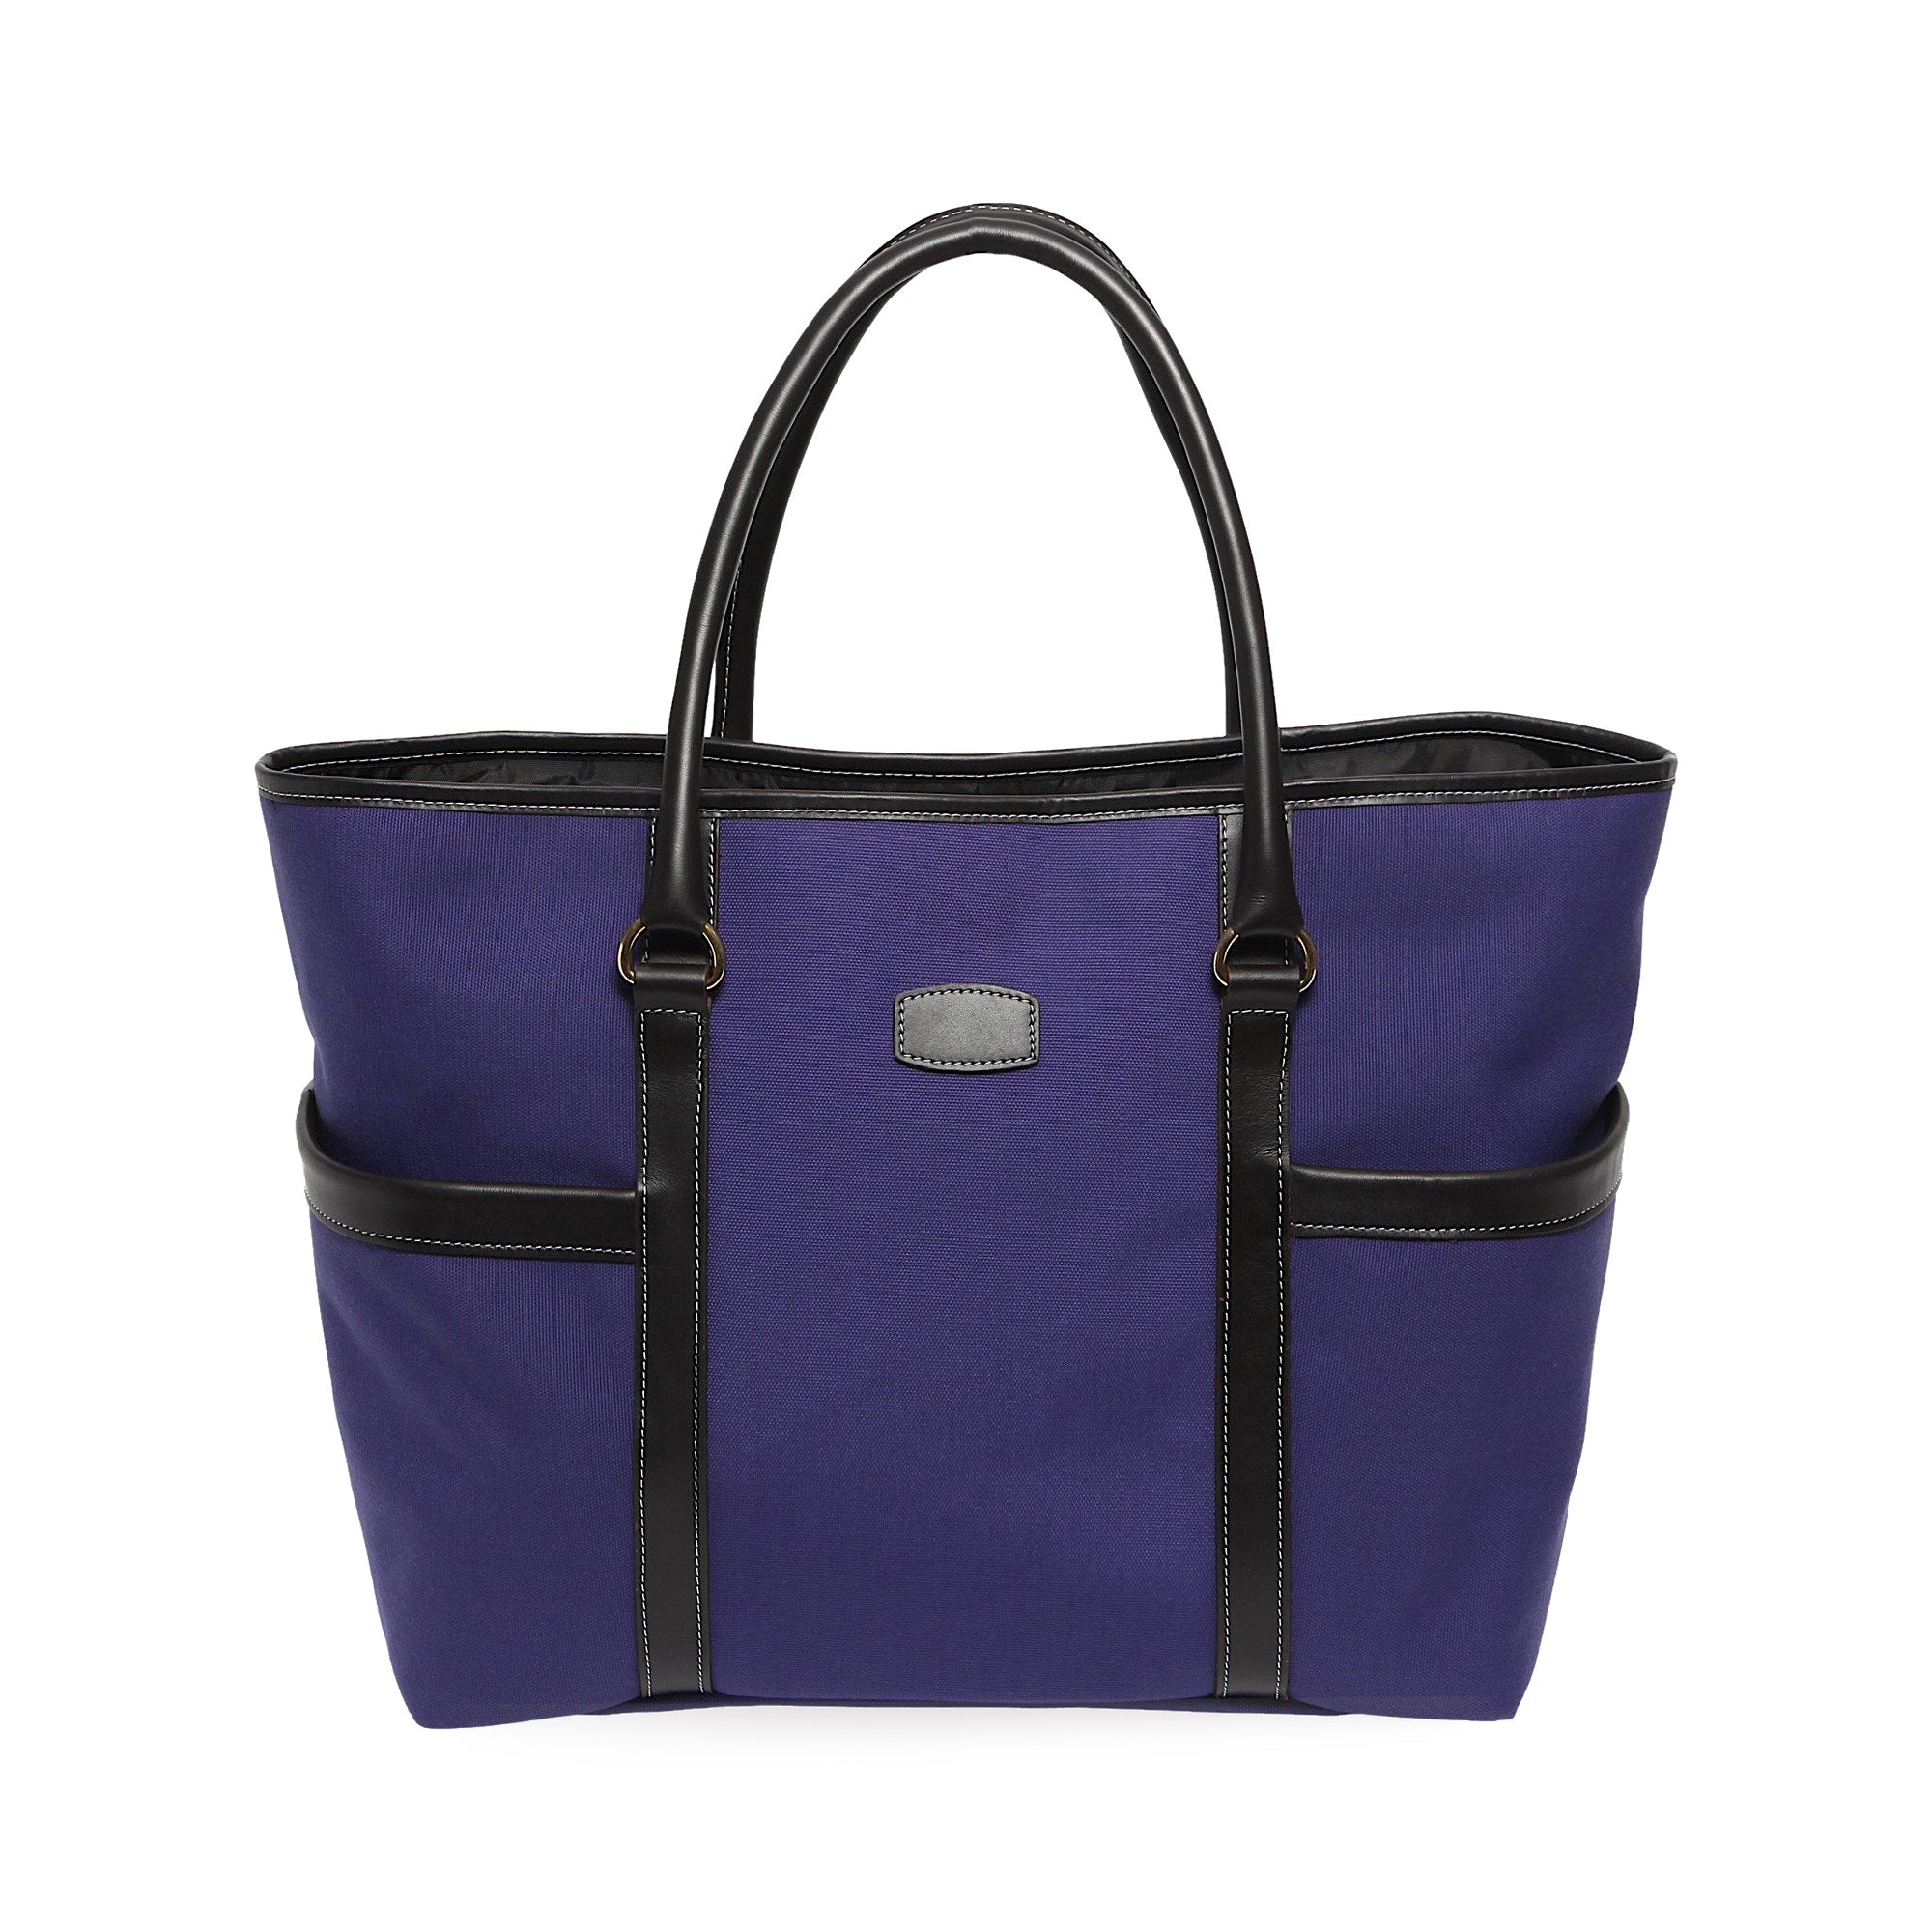 TOWN AND COUNTRY TOTE